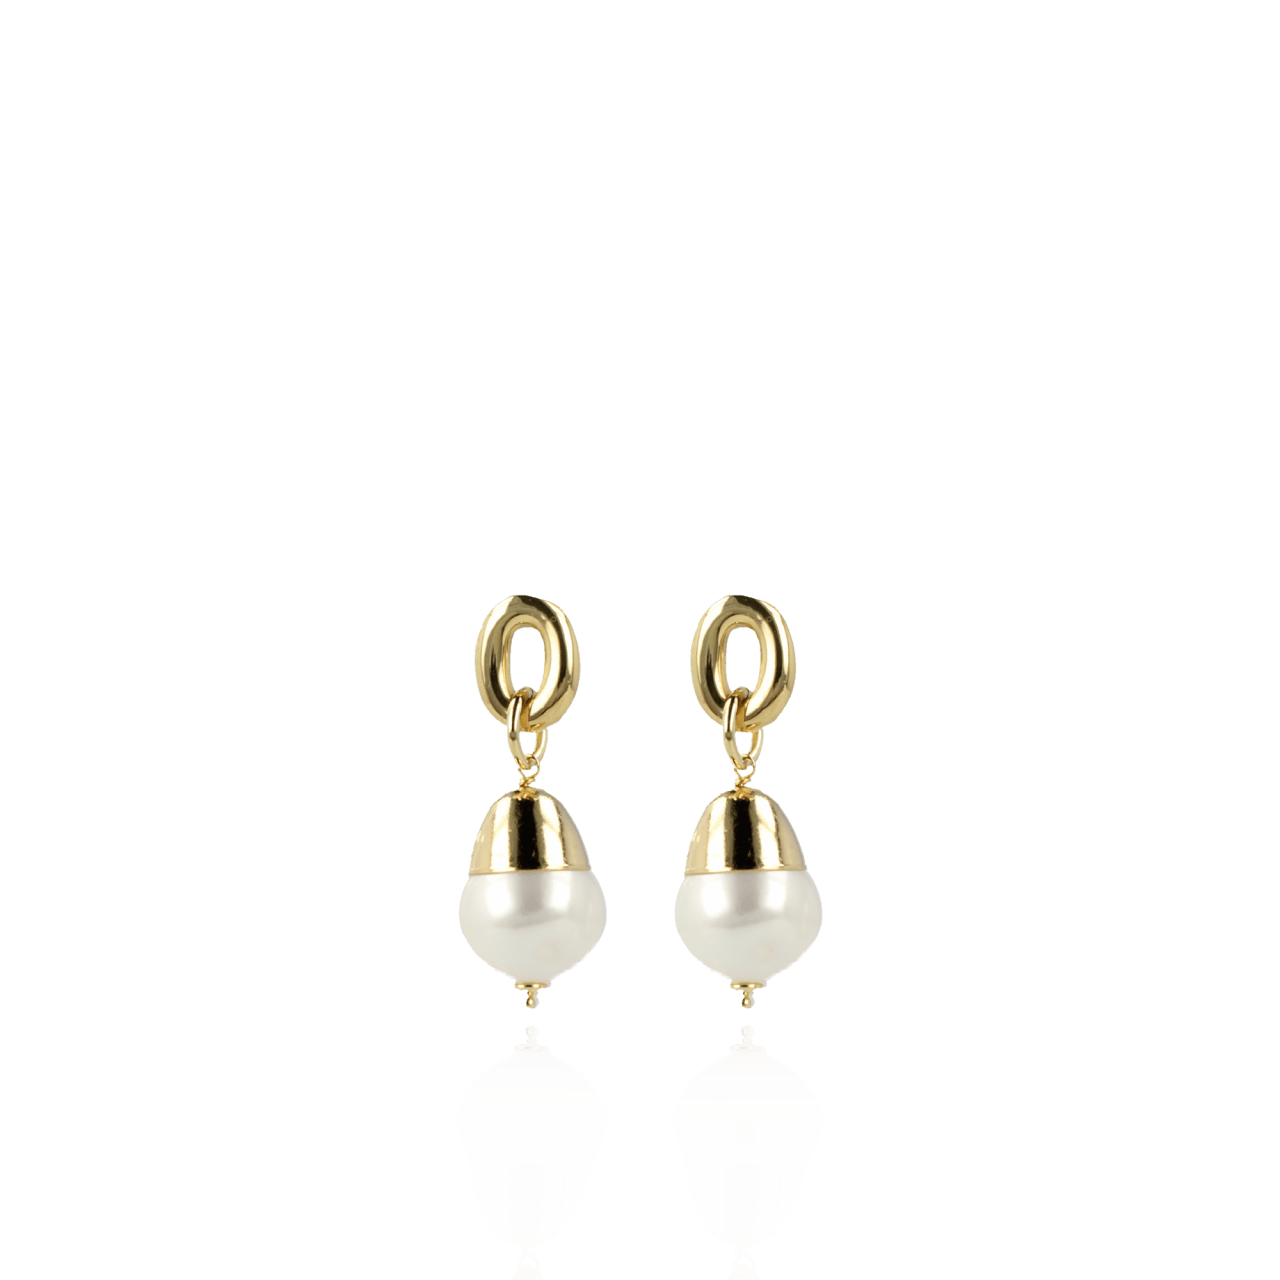 Limited pearl earrings classic